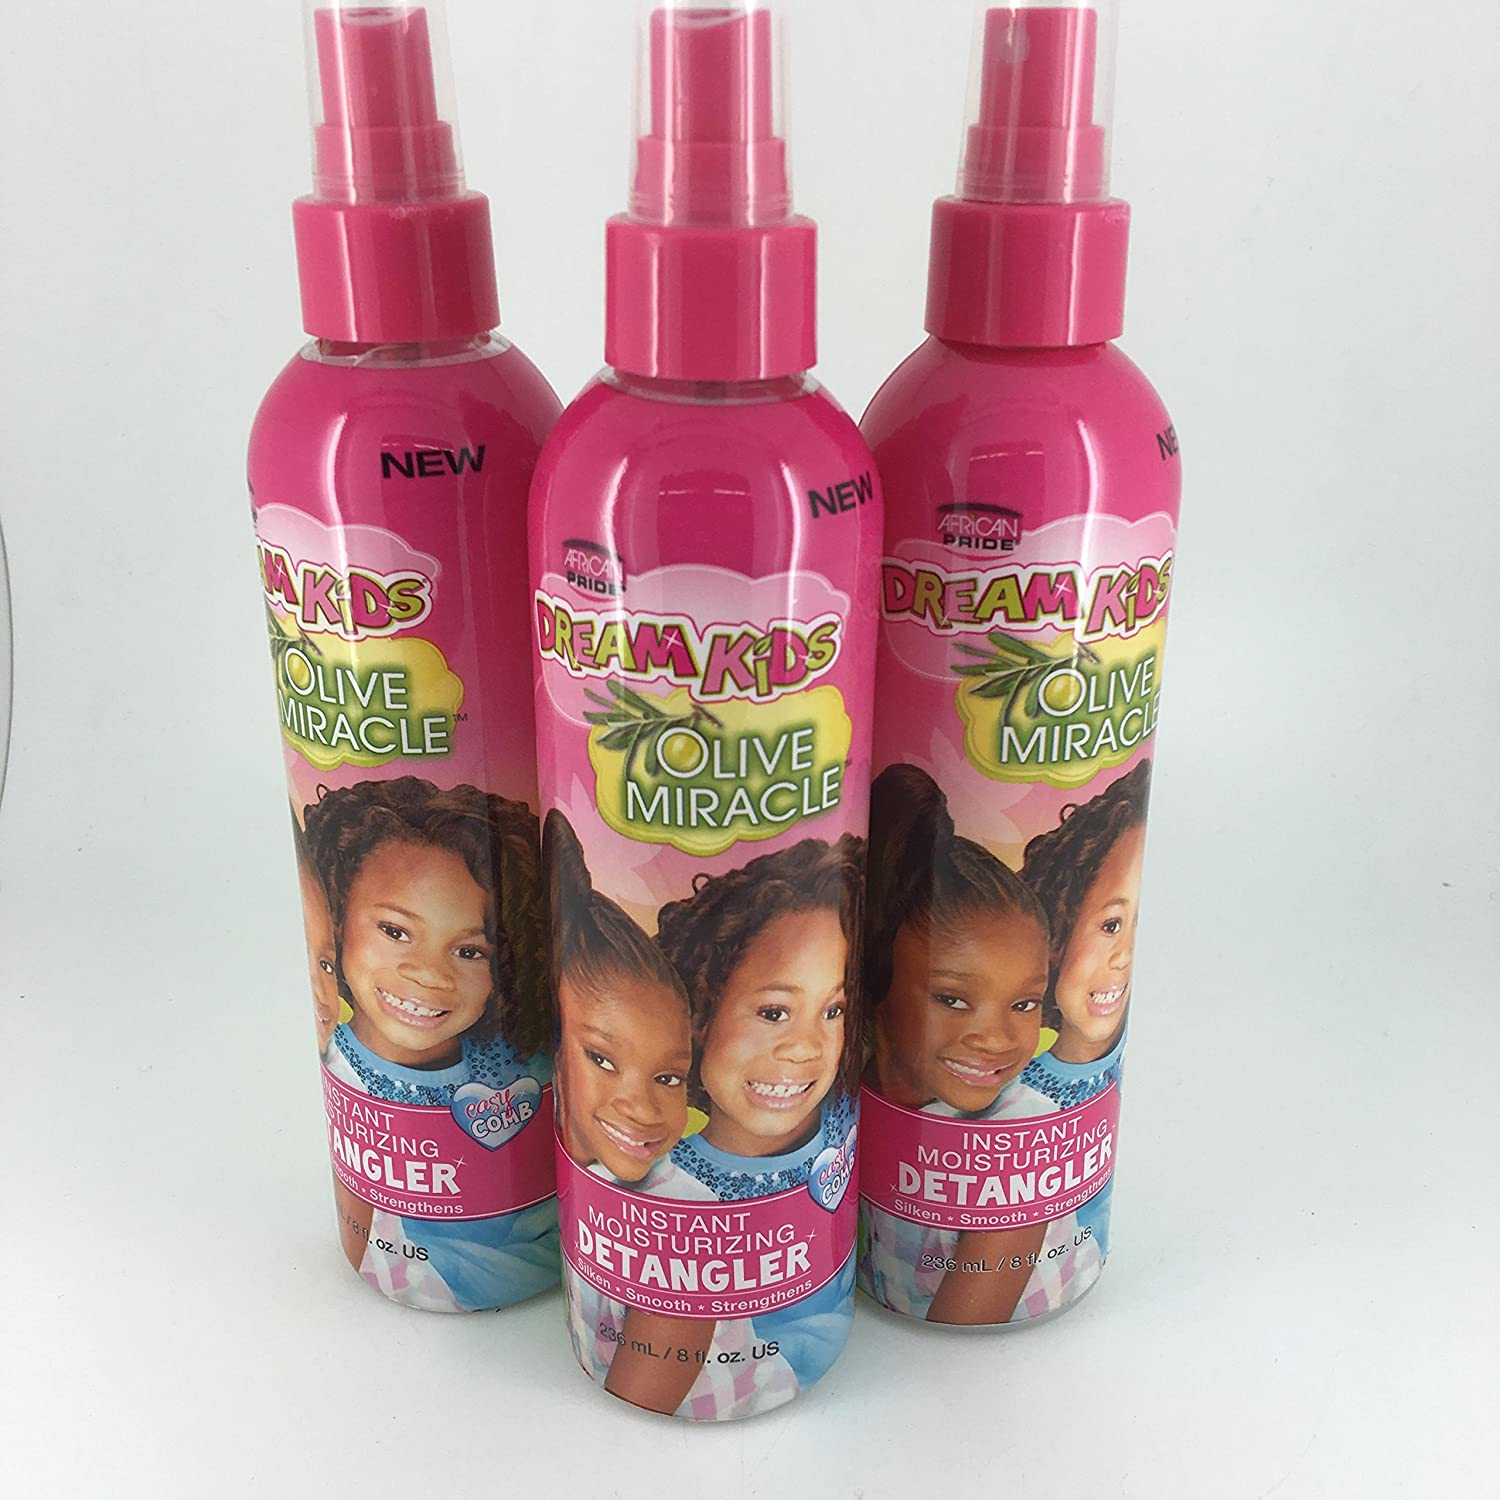 African Pride Dream Kids Olive Miracle Detangler 8 Ounce (235ml) (3 Pack)